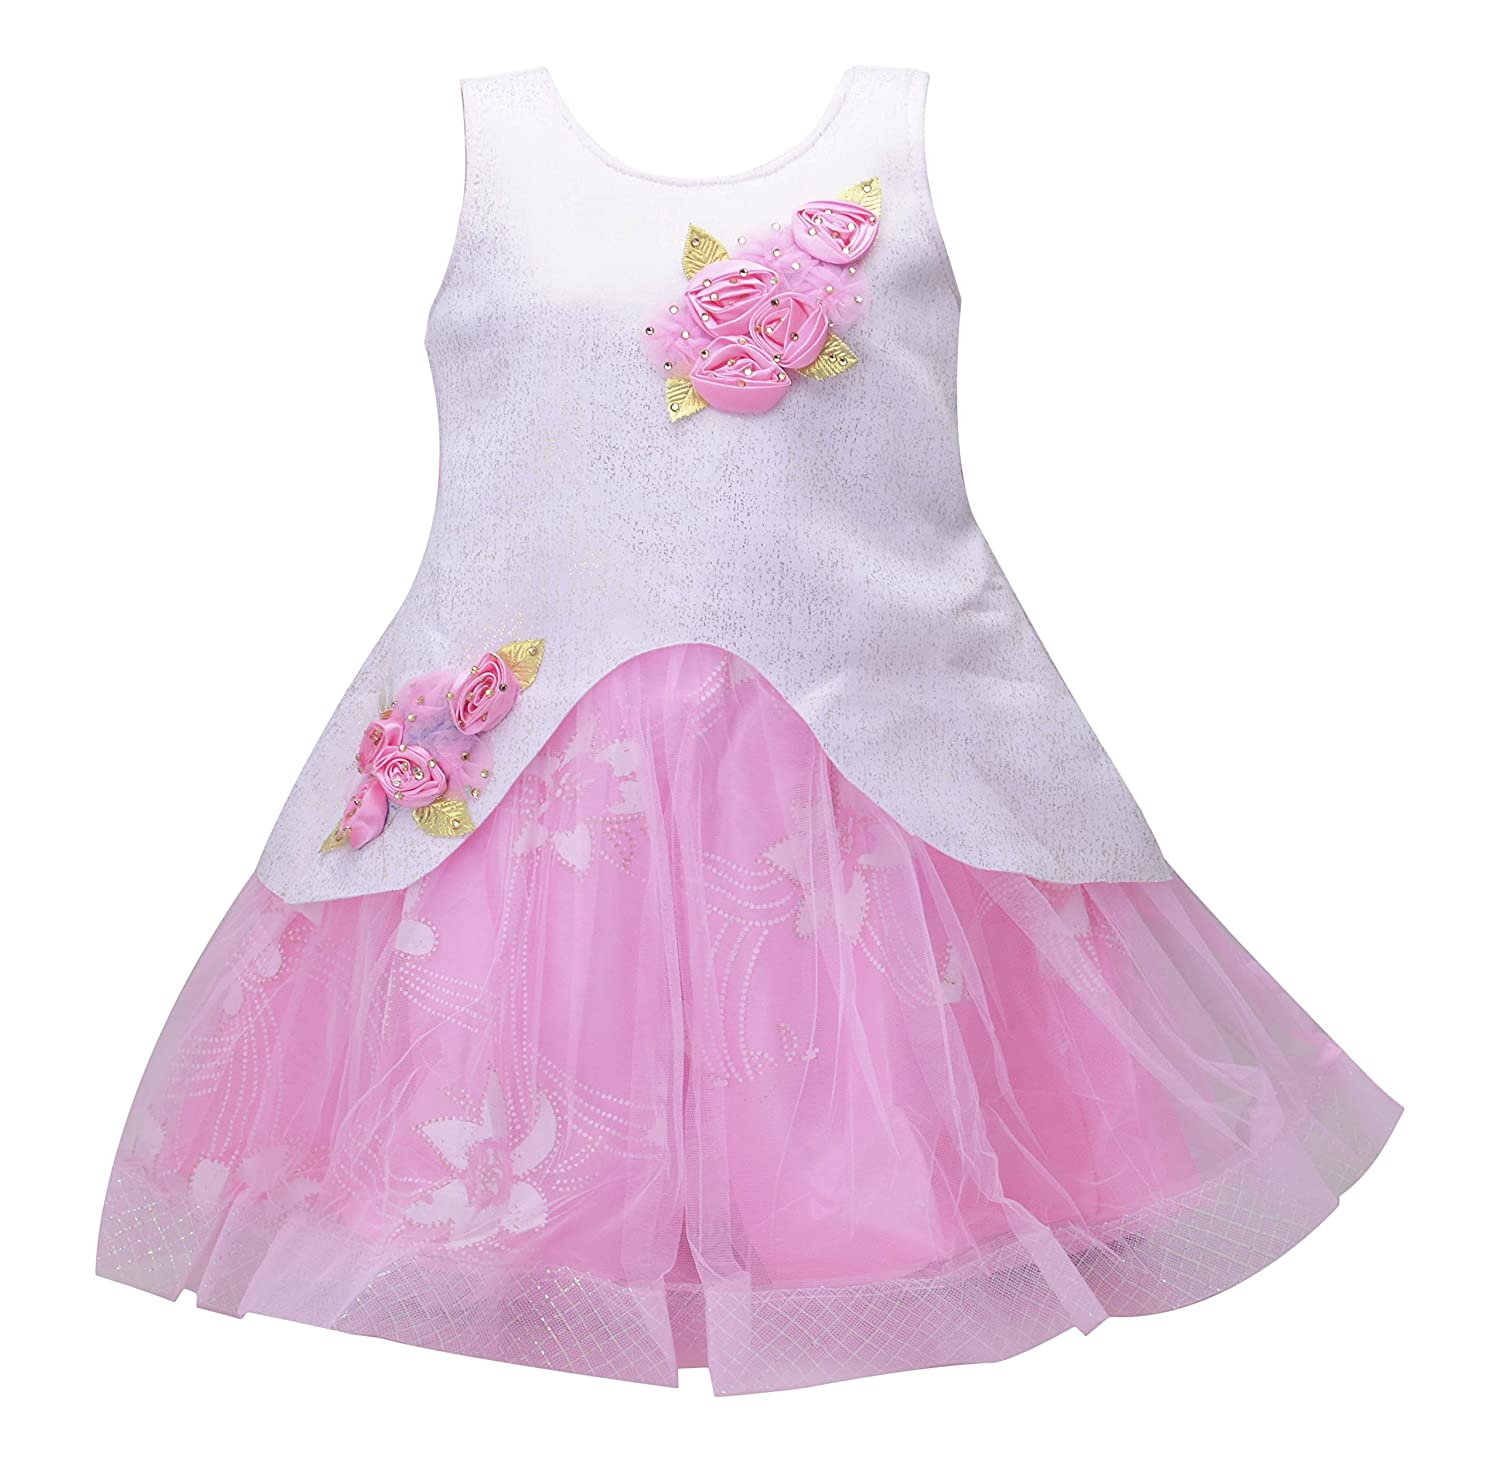 d32239942 Kids Girls Birthday Party wear Frock Dress for Baby Girl Kids_ Pink  Scuba_1-7 Years